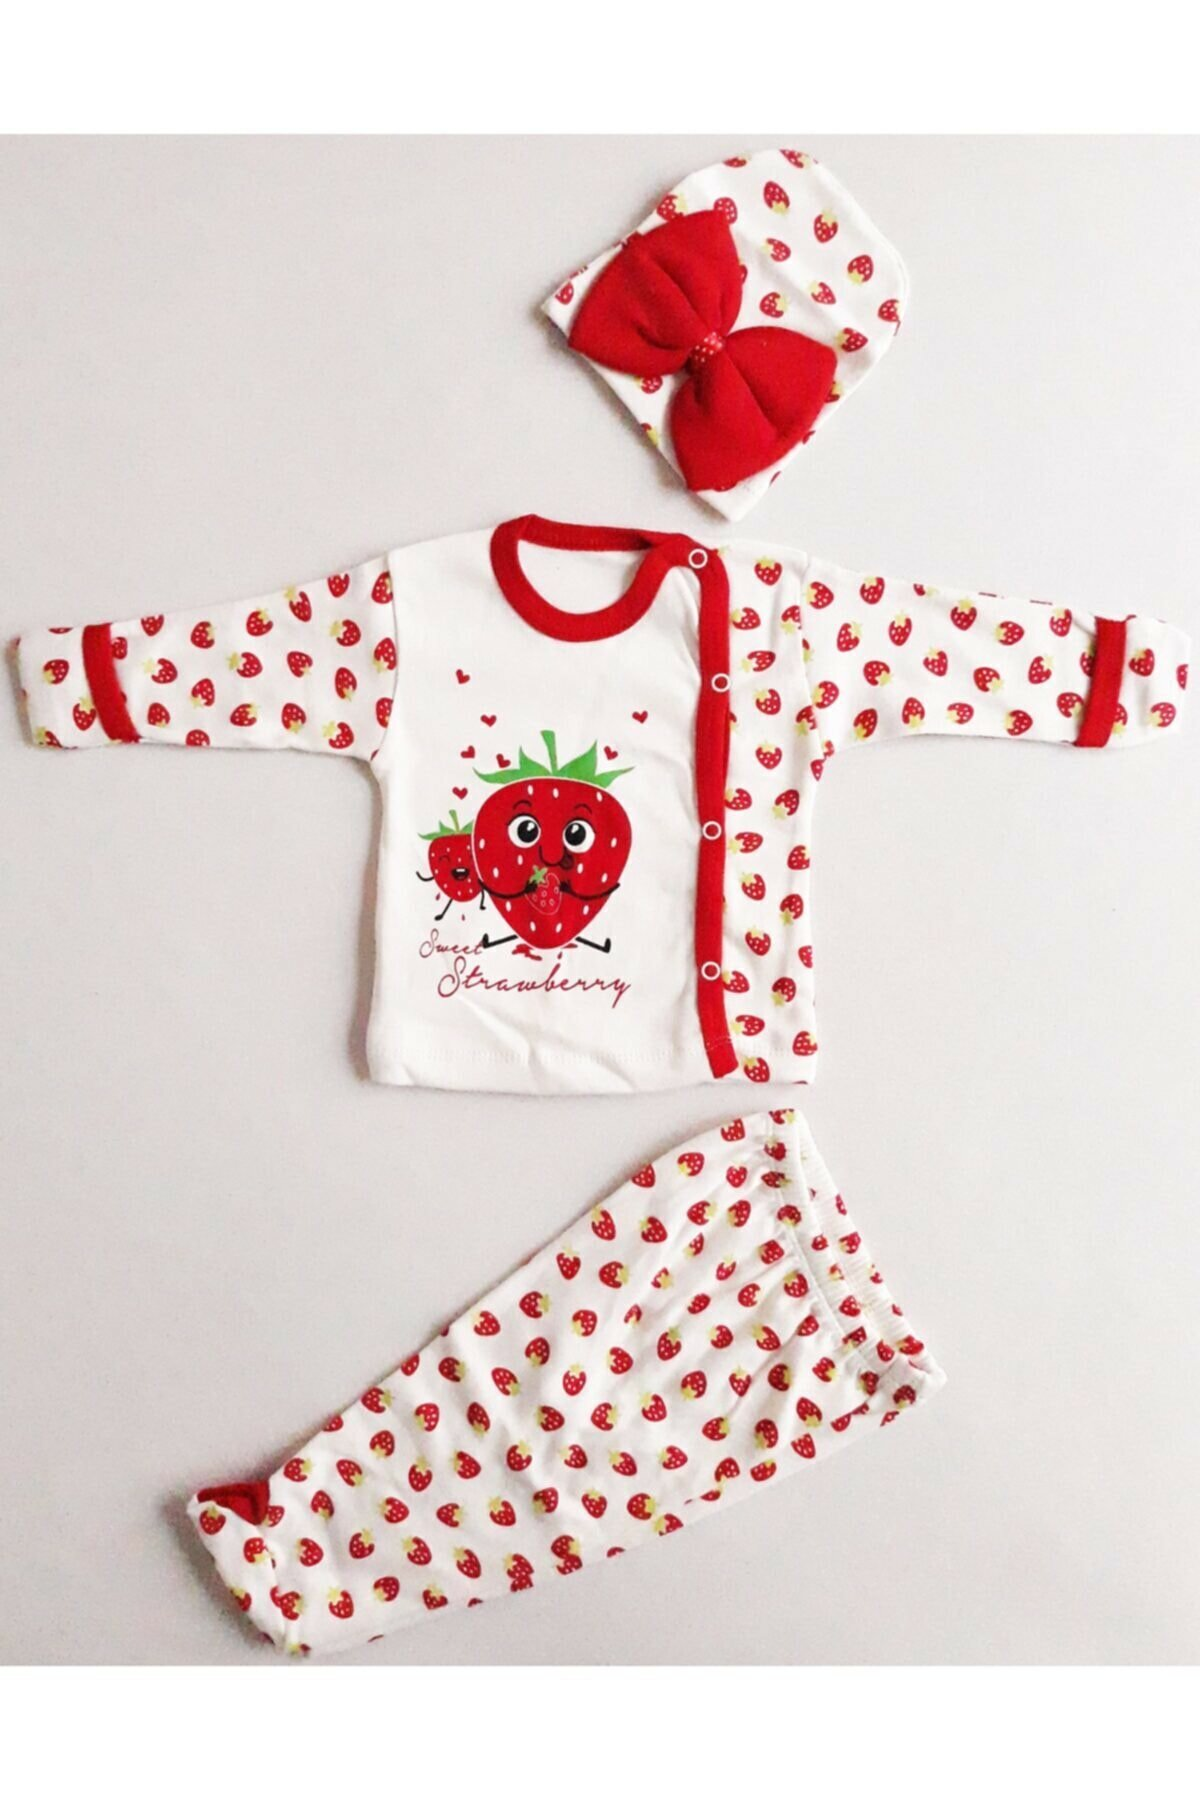 2017 new summer baby clothing set cotton cute pattern vest Strawberry Pattern White Red Infant New Born Baby Girl Set of 3 Outfit 100% Natural Cotton 4 Seasons Cute Confortable soft Clothing